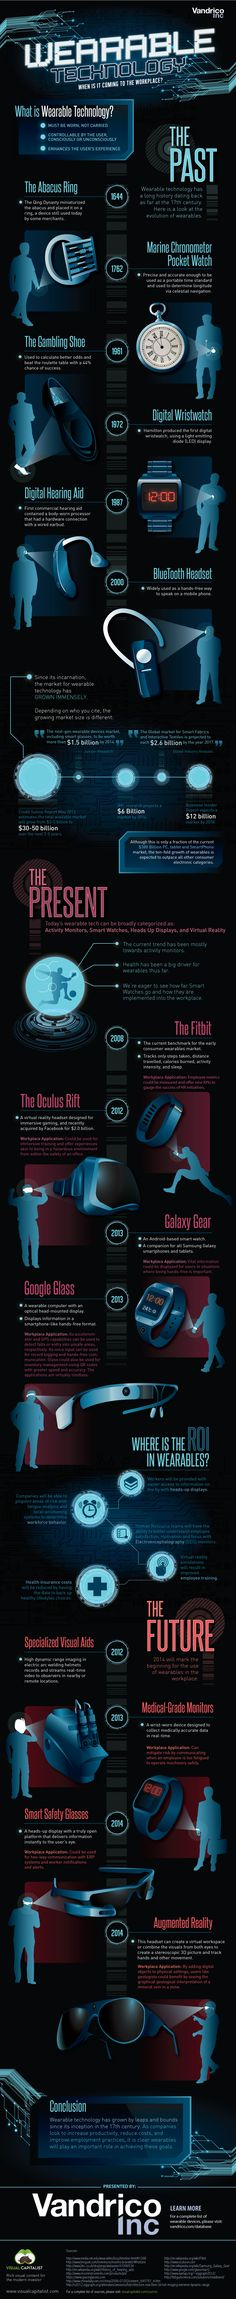 INFOGRAPHIC: Past, present and future of wearables #wearabletech